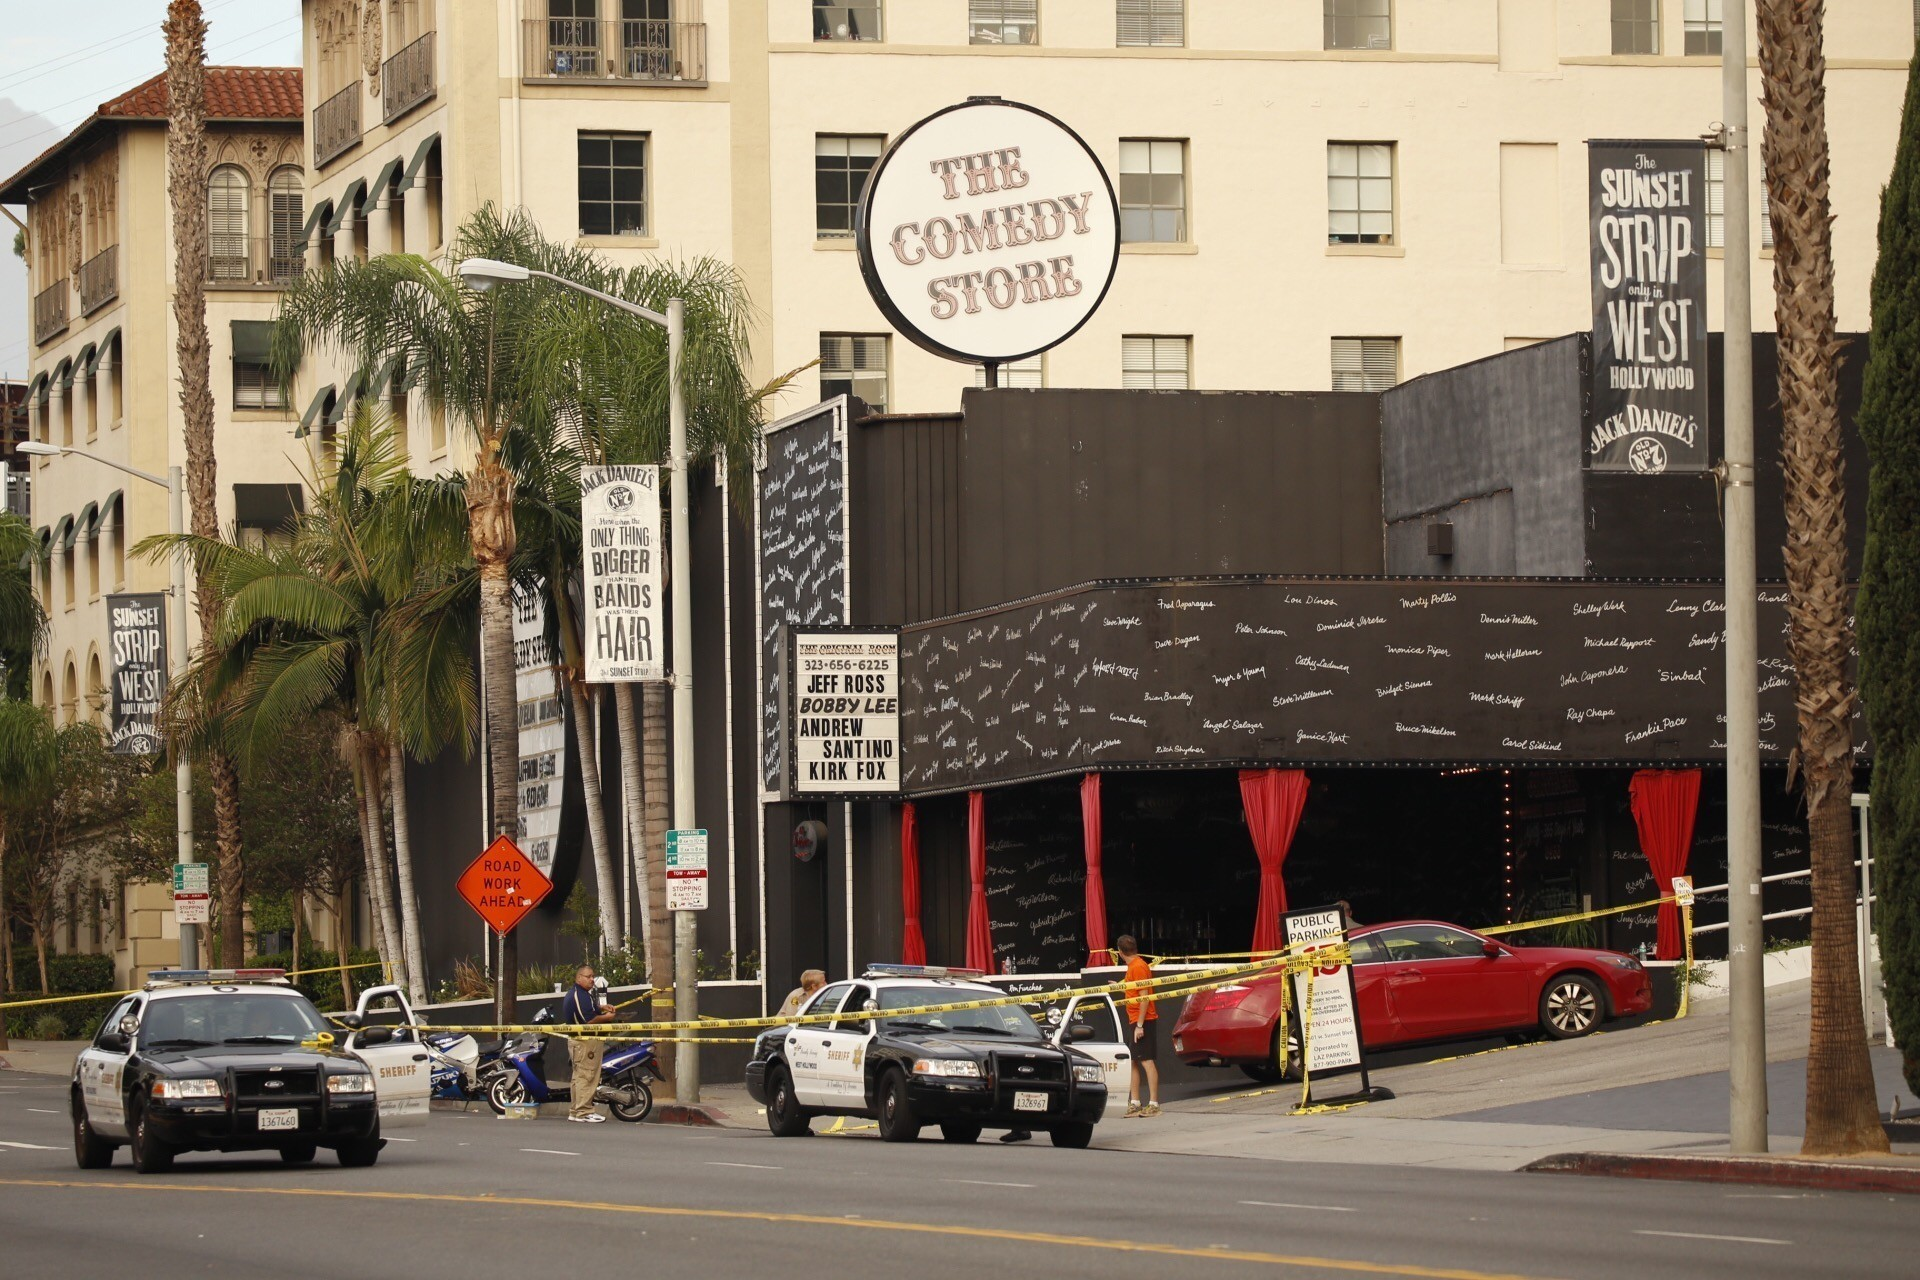 The Comedy Store is an American comedy club located in West Hollywood, California, at Sunset Boulevard on the Sunset bibresipa.ga has a sister comedy club in La Jolla, San Diego, California.